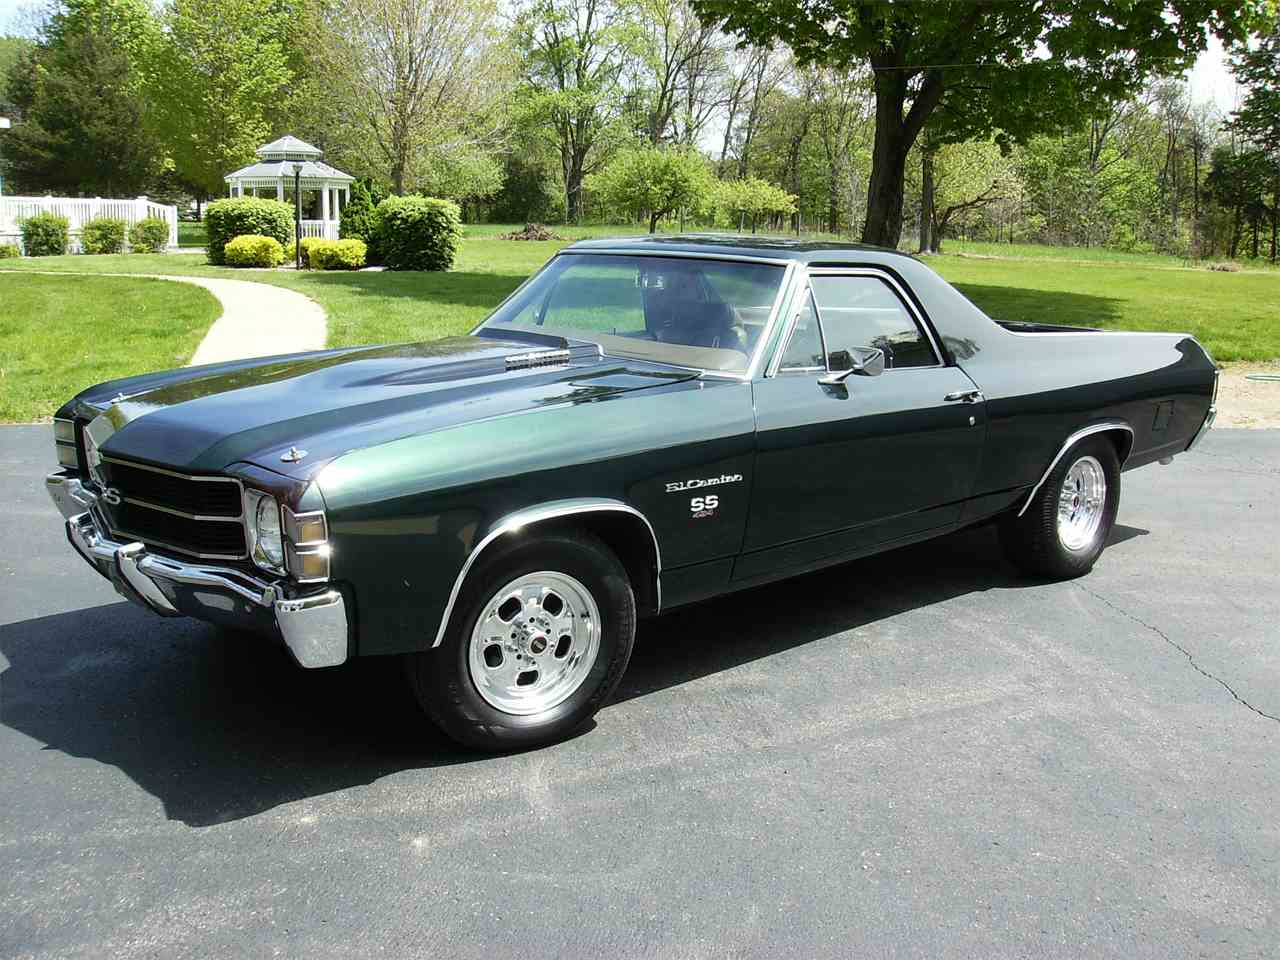 1971 chevrolet el camino ss for sale cc 989049. Black Bedroom Furniture Sets. Home Design Ideas